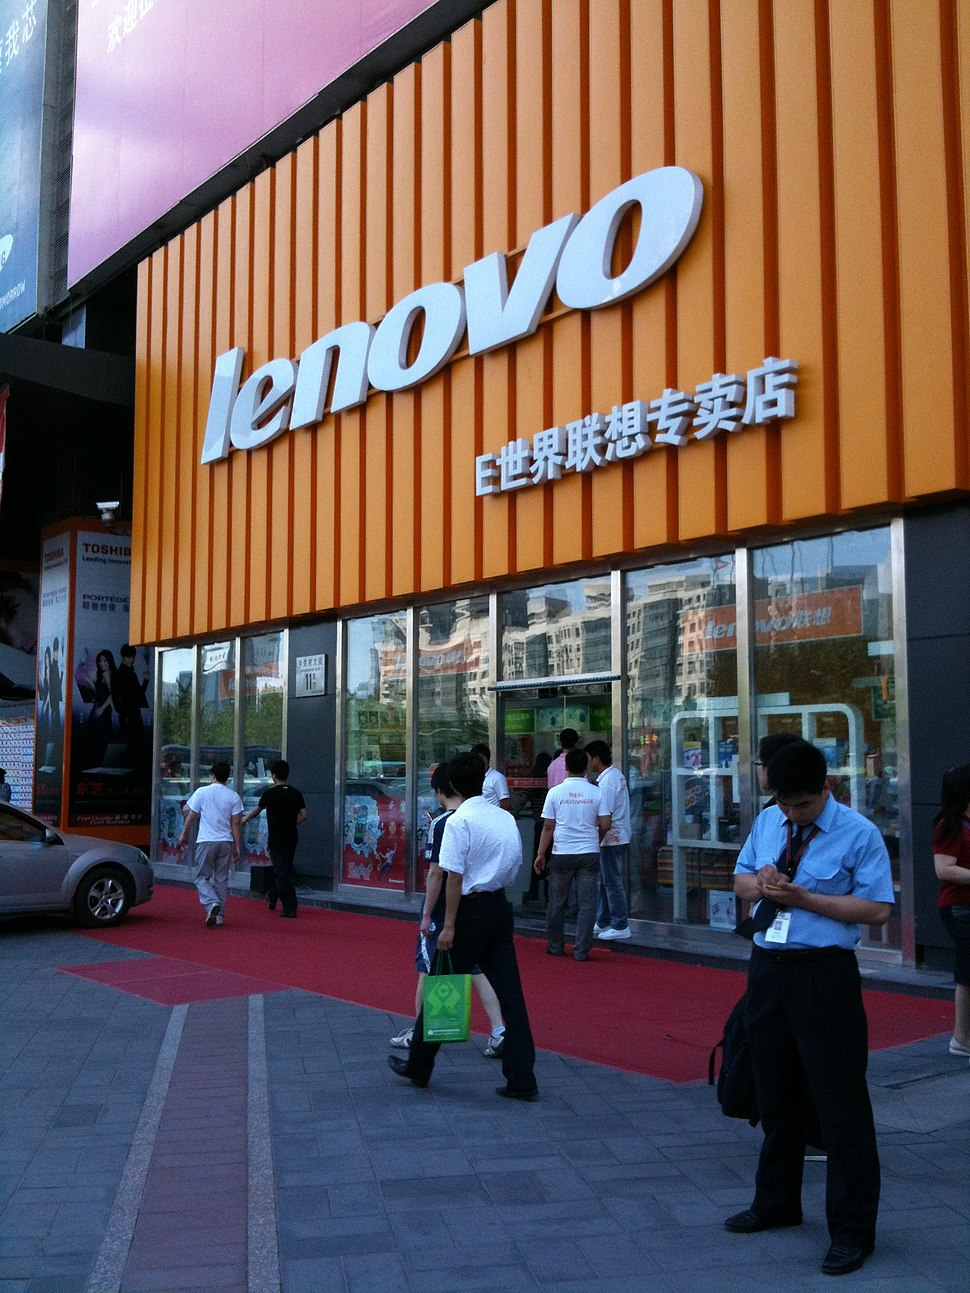 A Lenovo Store in China